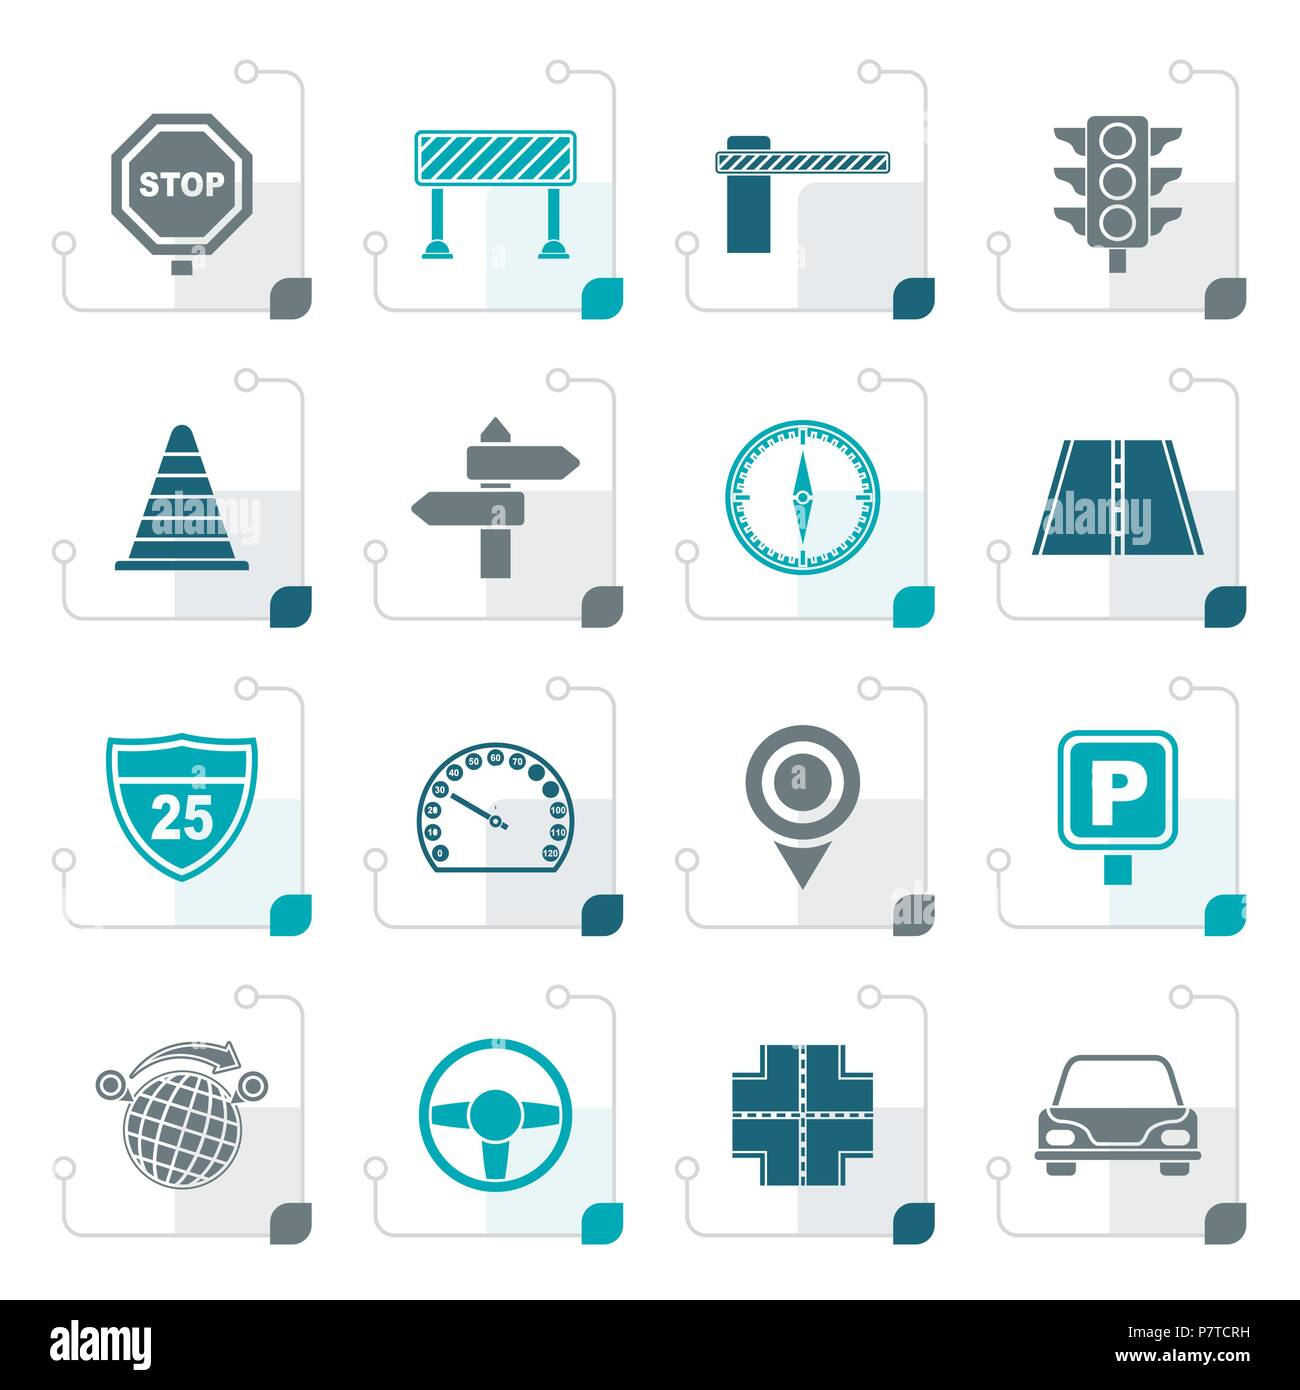 Stylized Road and Traffic Icons - vector icon set - Stock Image